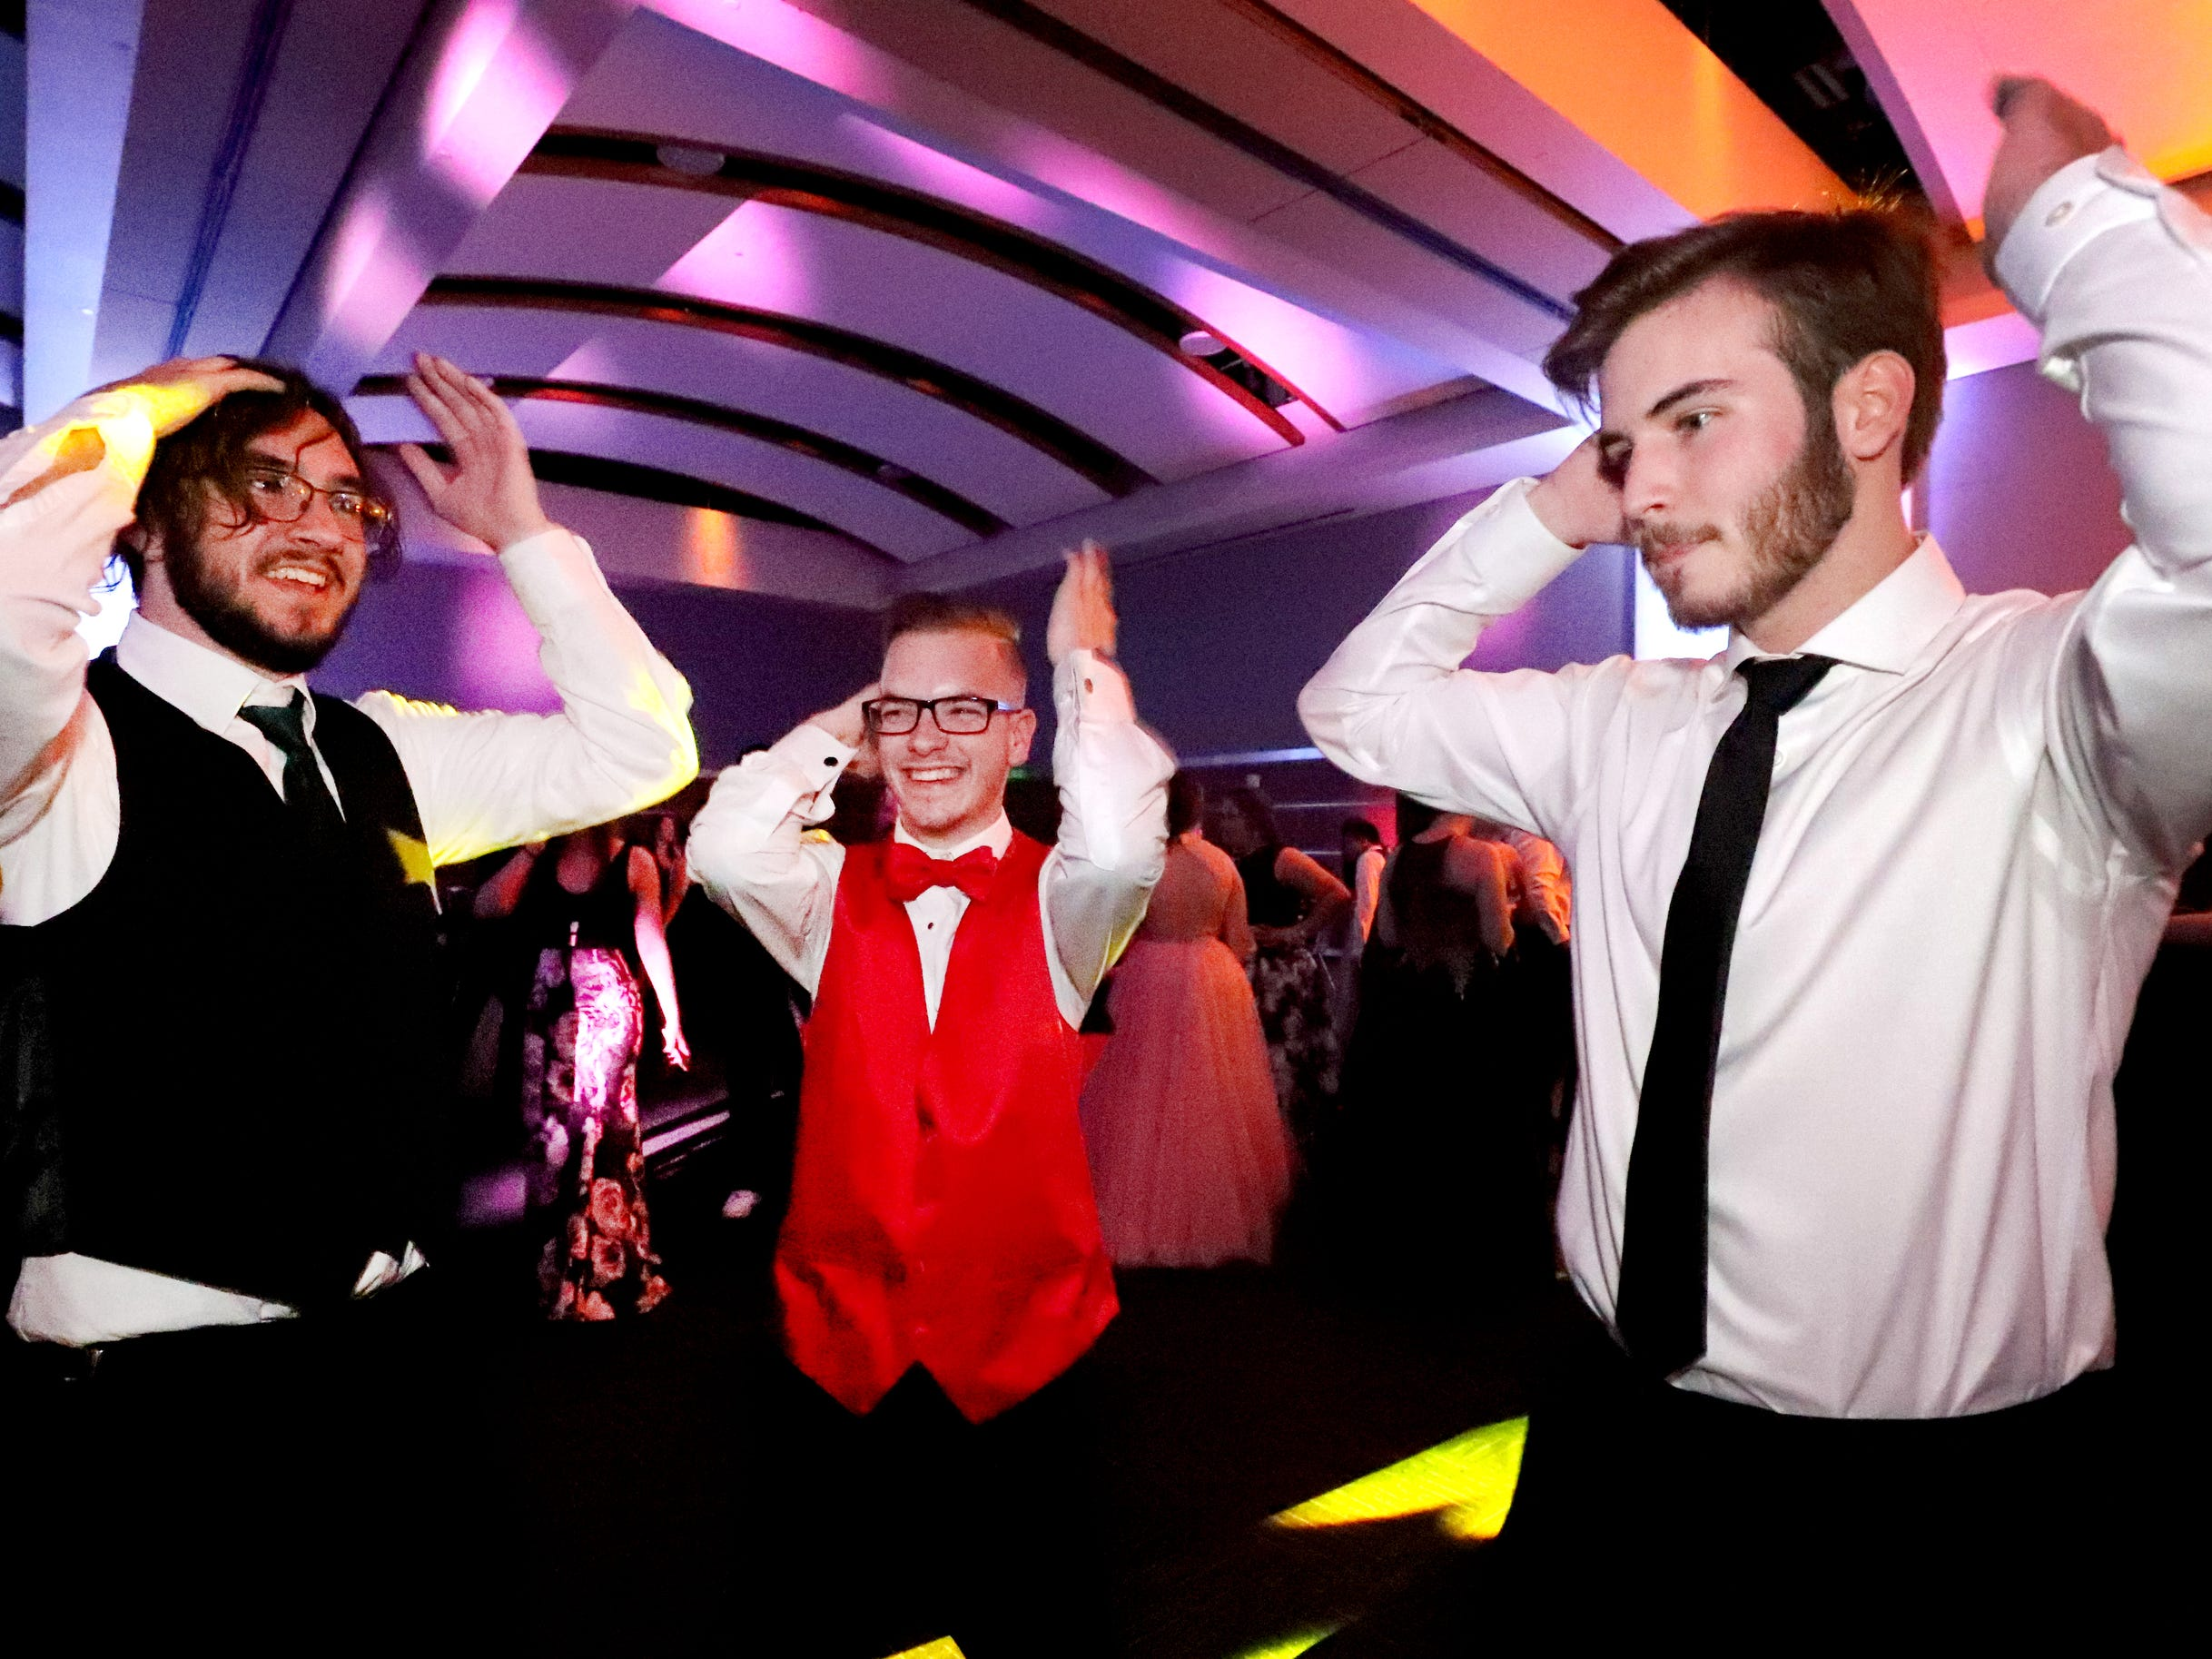 (Left to Right ) Zach Wilder, Everett Davis and Zane Jones joke that the song goes on forever as they all dance the Macarena at Blackman's prom on Friday April 12, 2019, at MTSU.